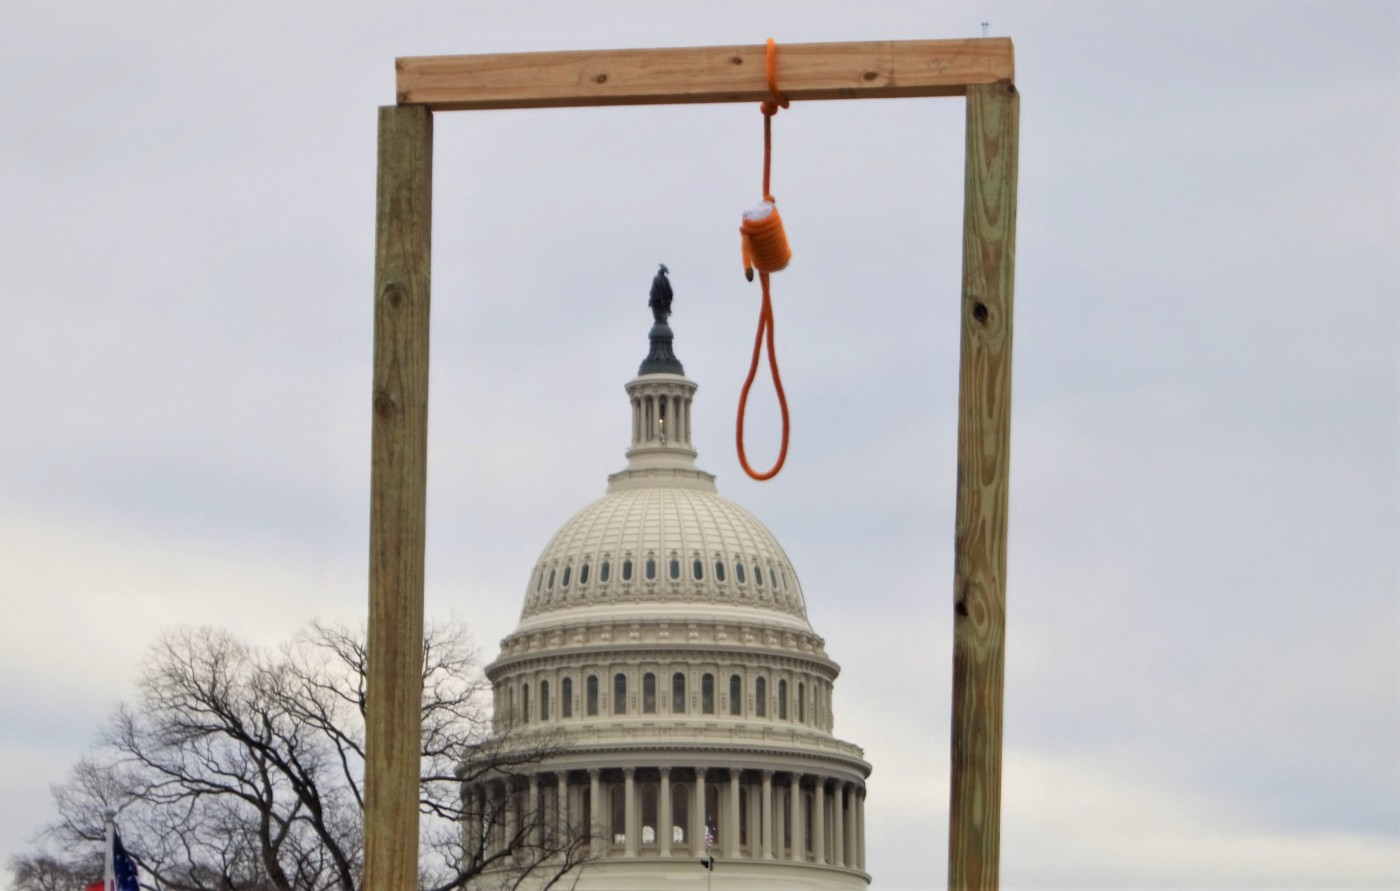 A noose in front of the capitol building on the day of the insurrection